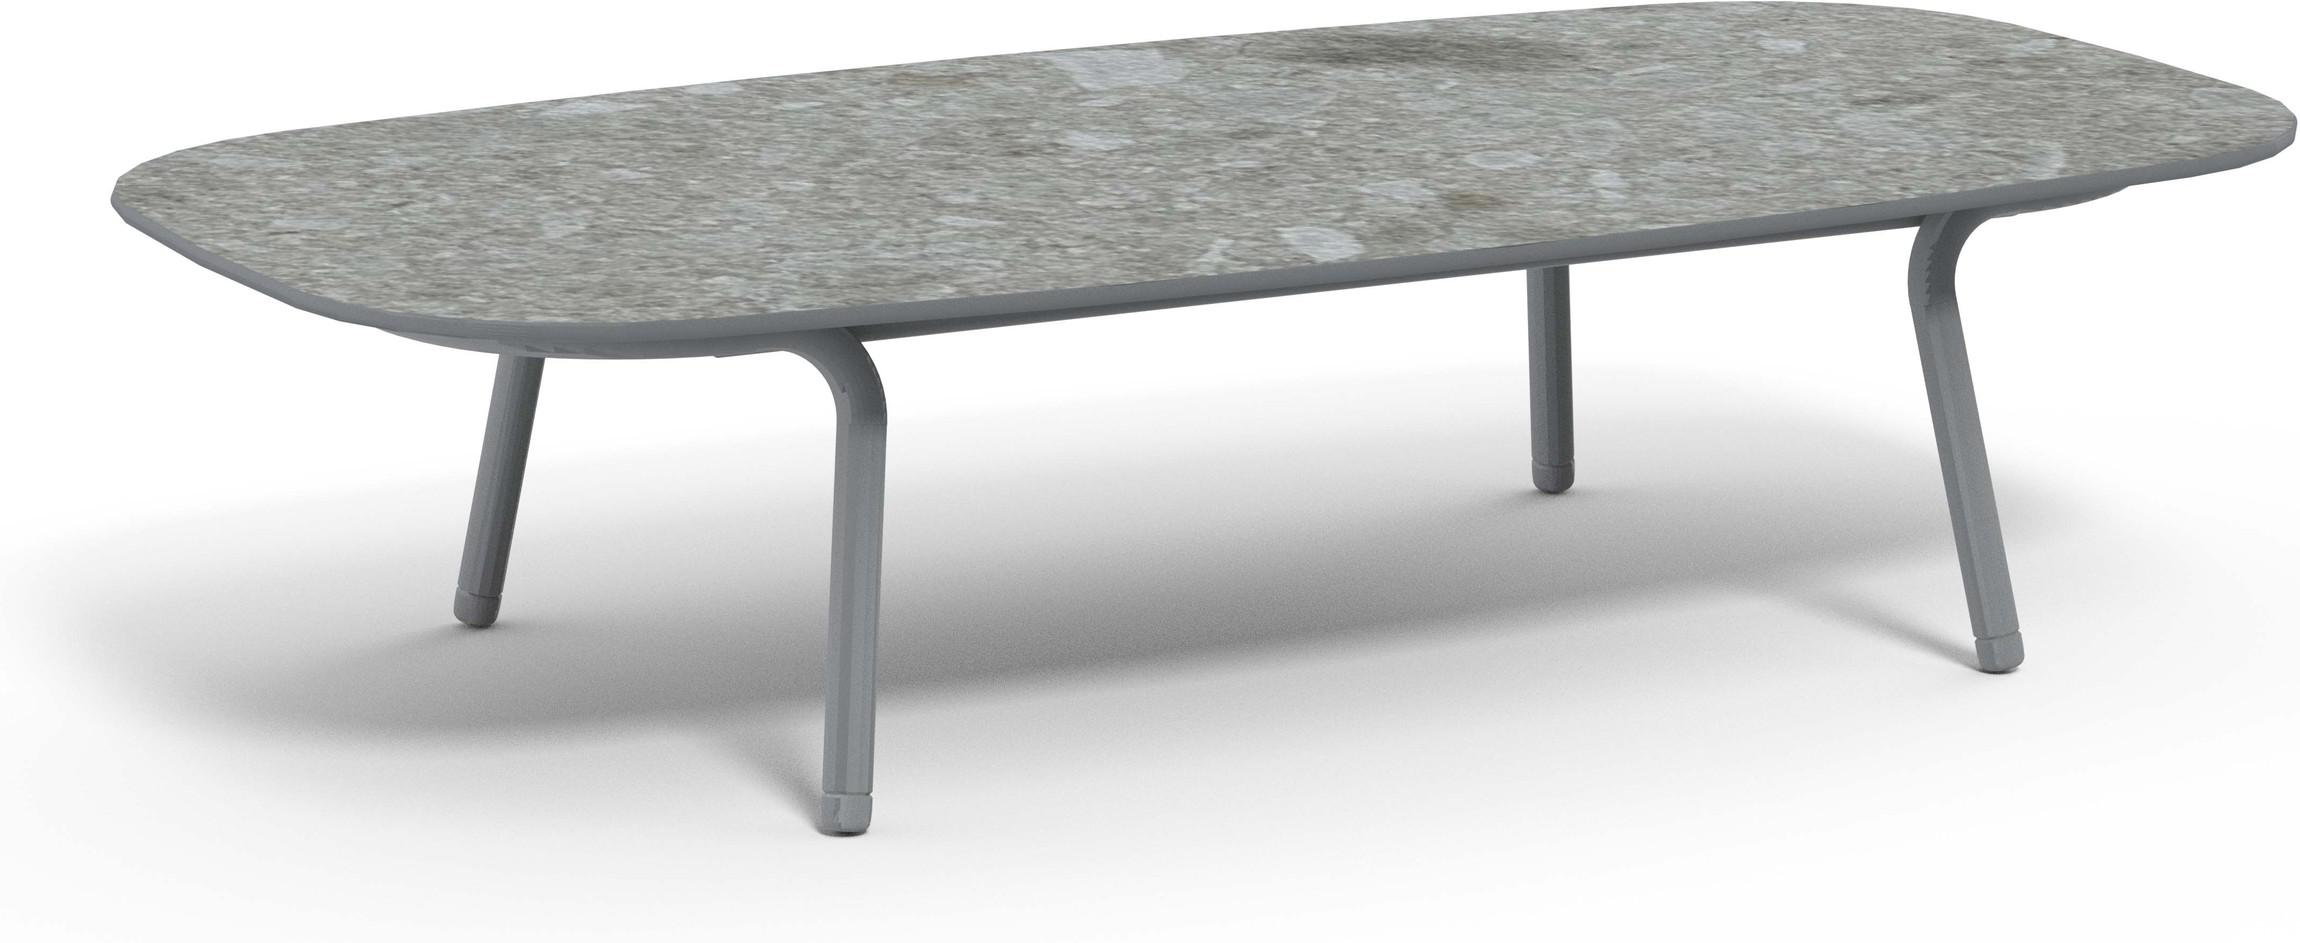 Minus Coffee table - flint - CF 148